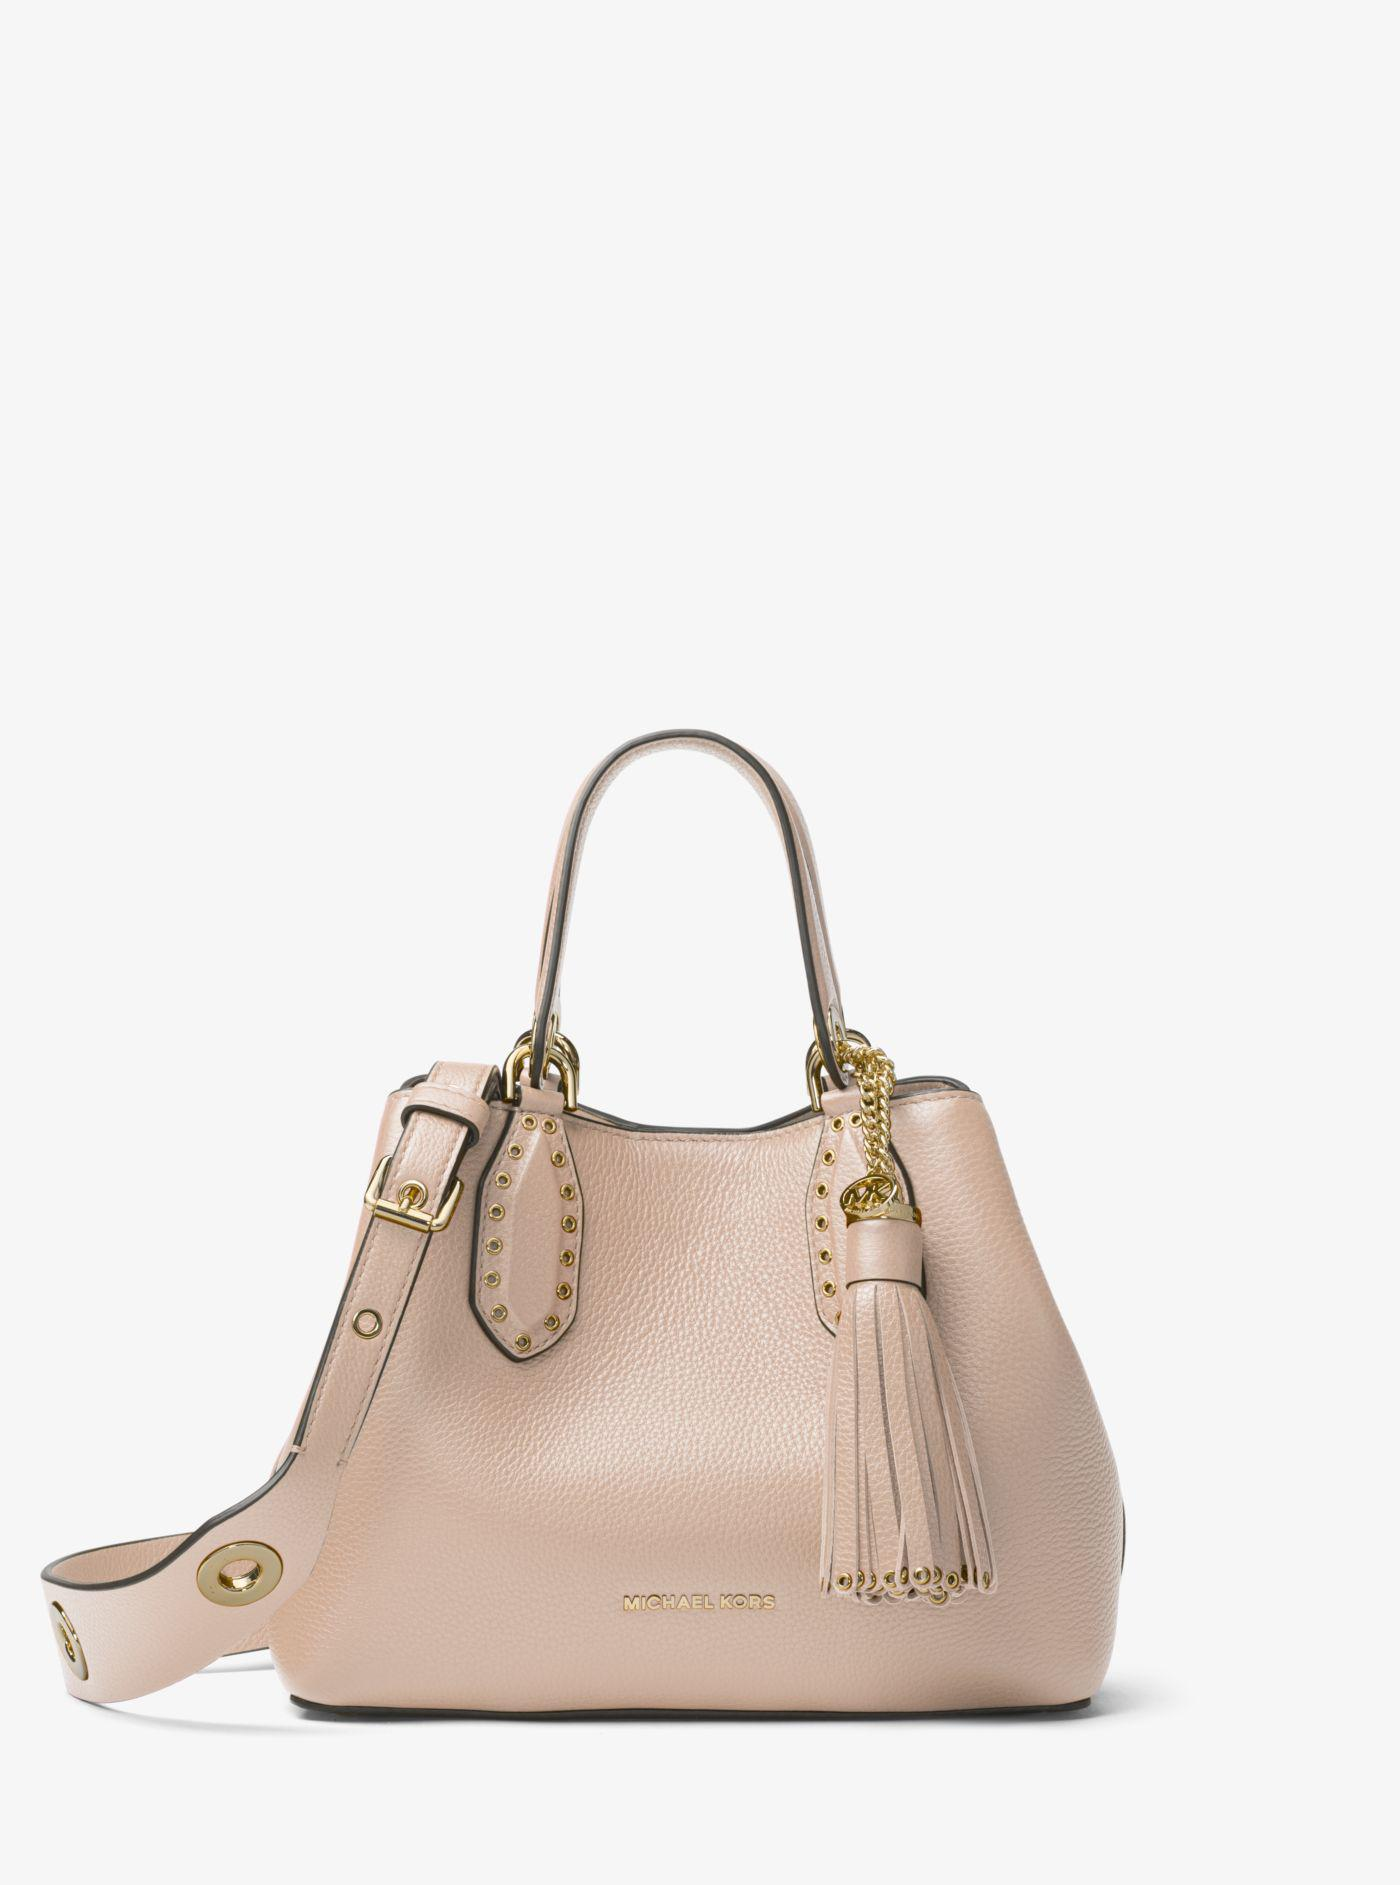 96b0c95c521e8 Michael Kors Brooklyn Small Leather Satchel in Pink - Lyst